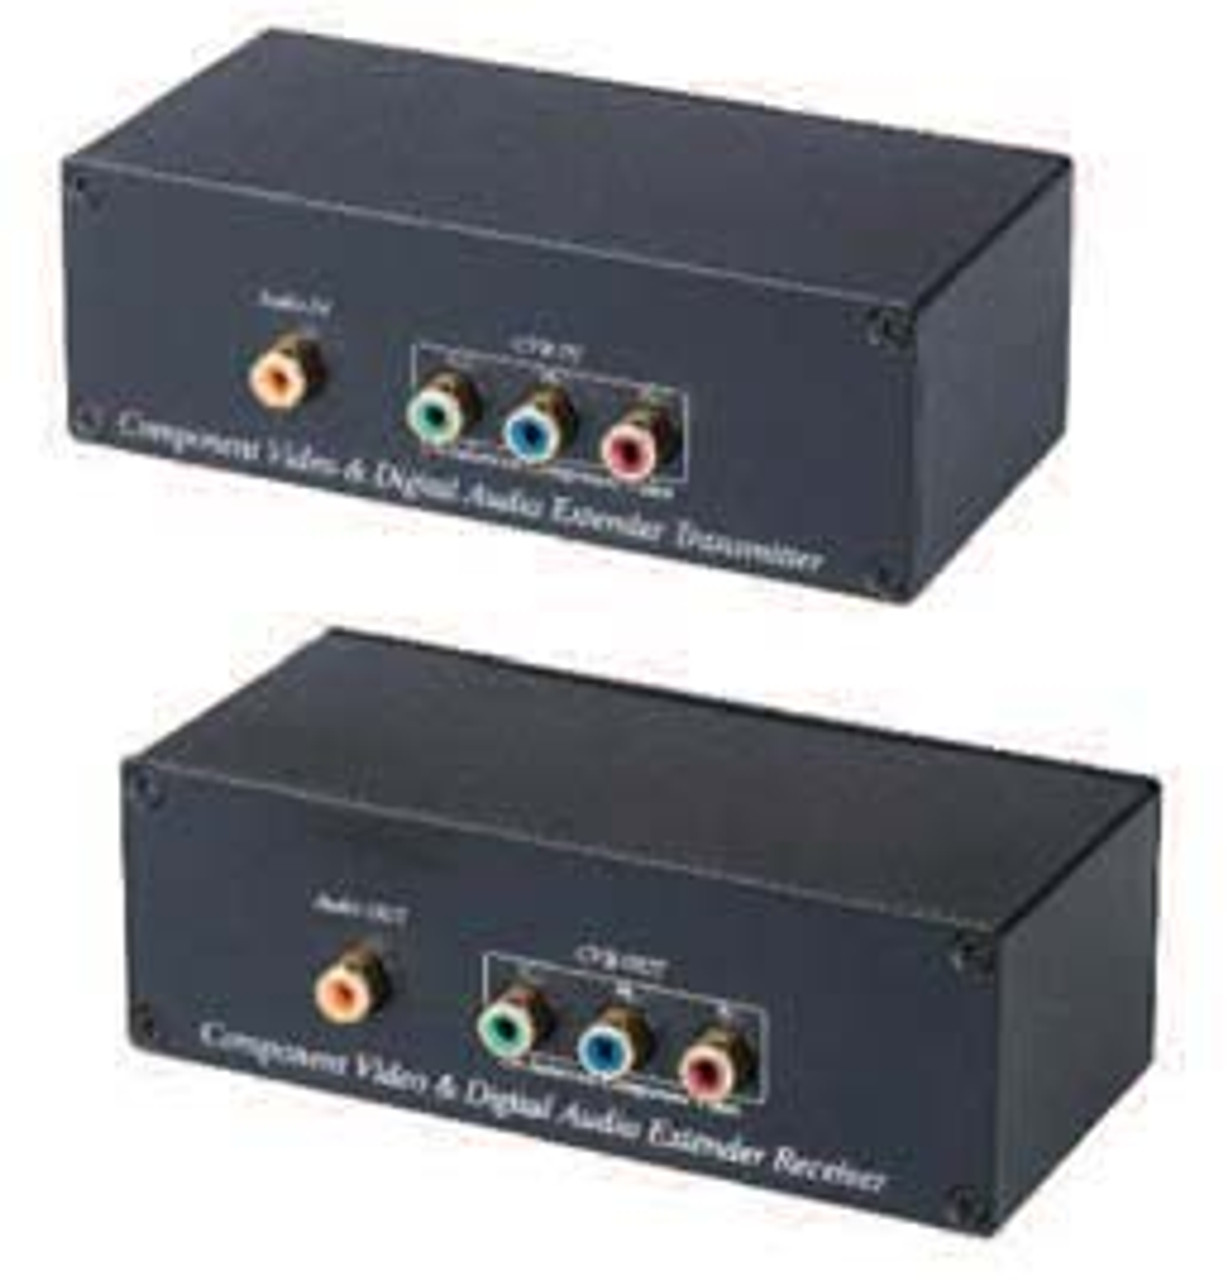 CAT5 Component Video Balun Transformer with Digital Audio Kit